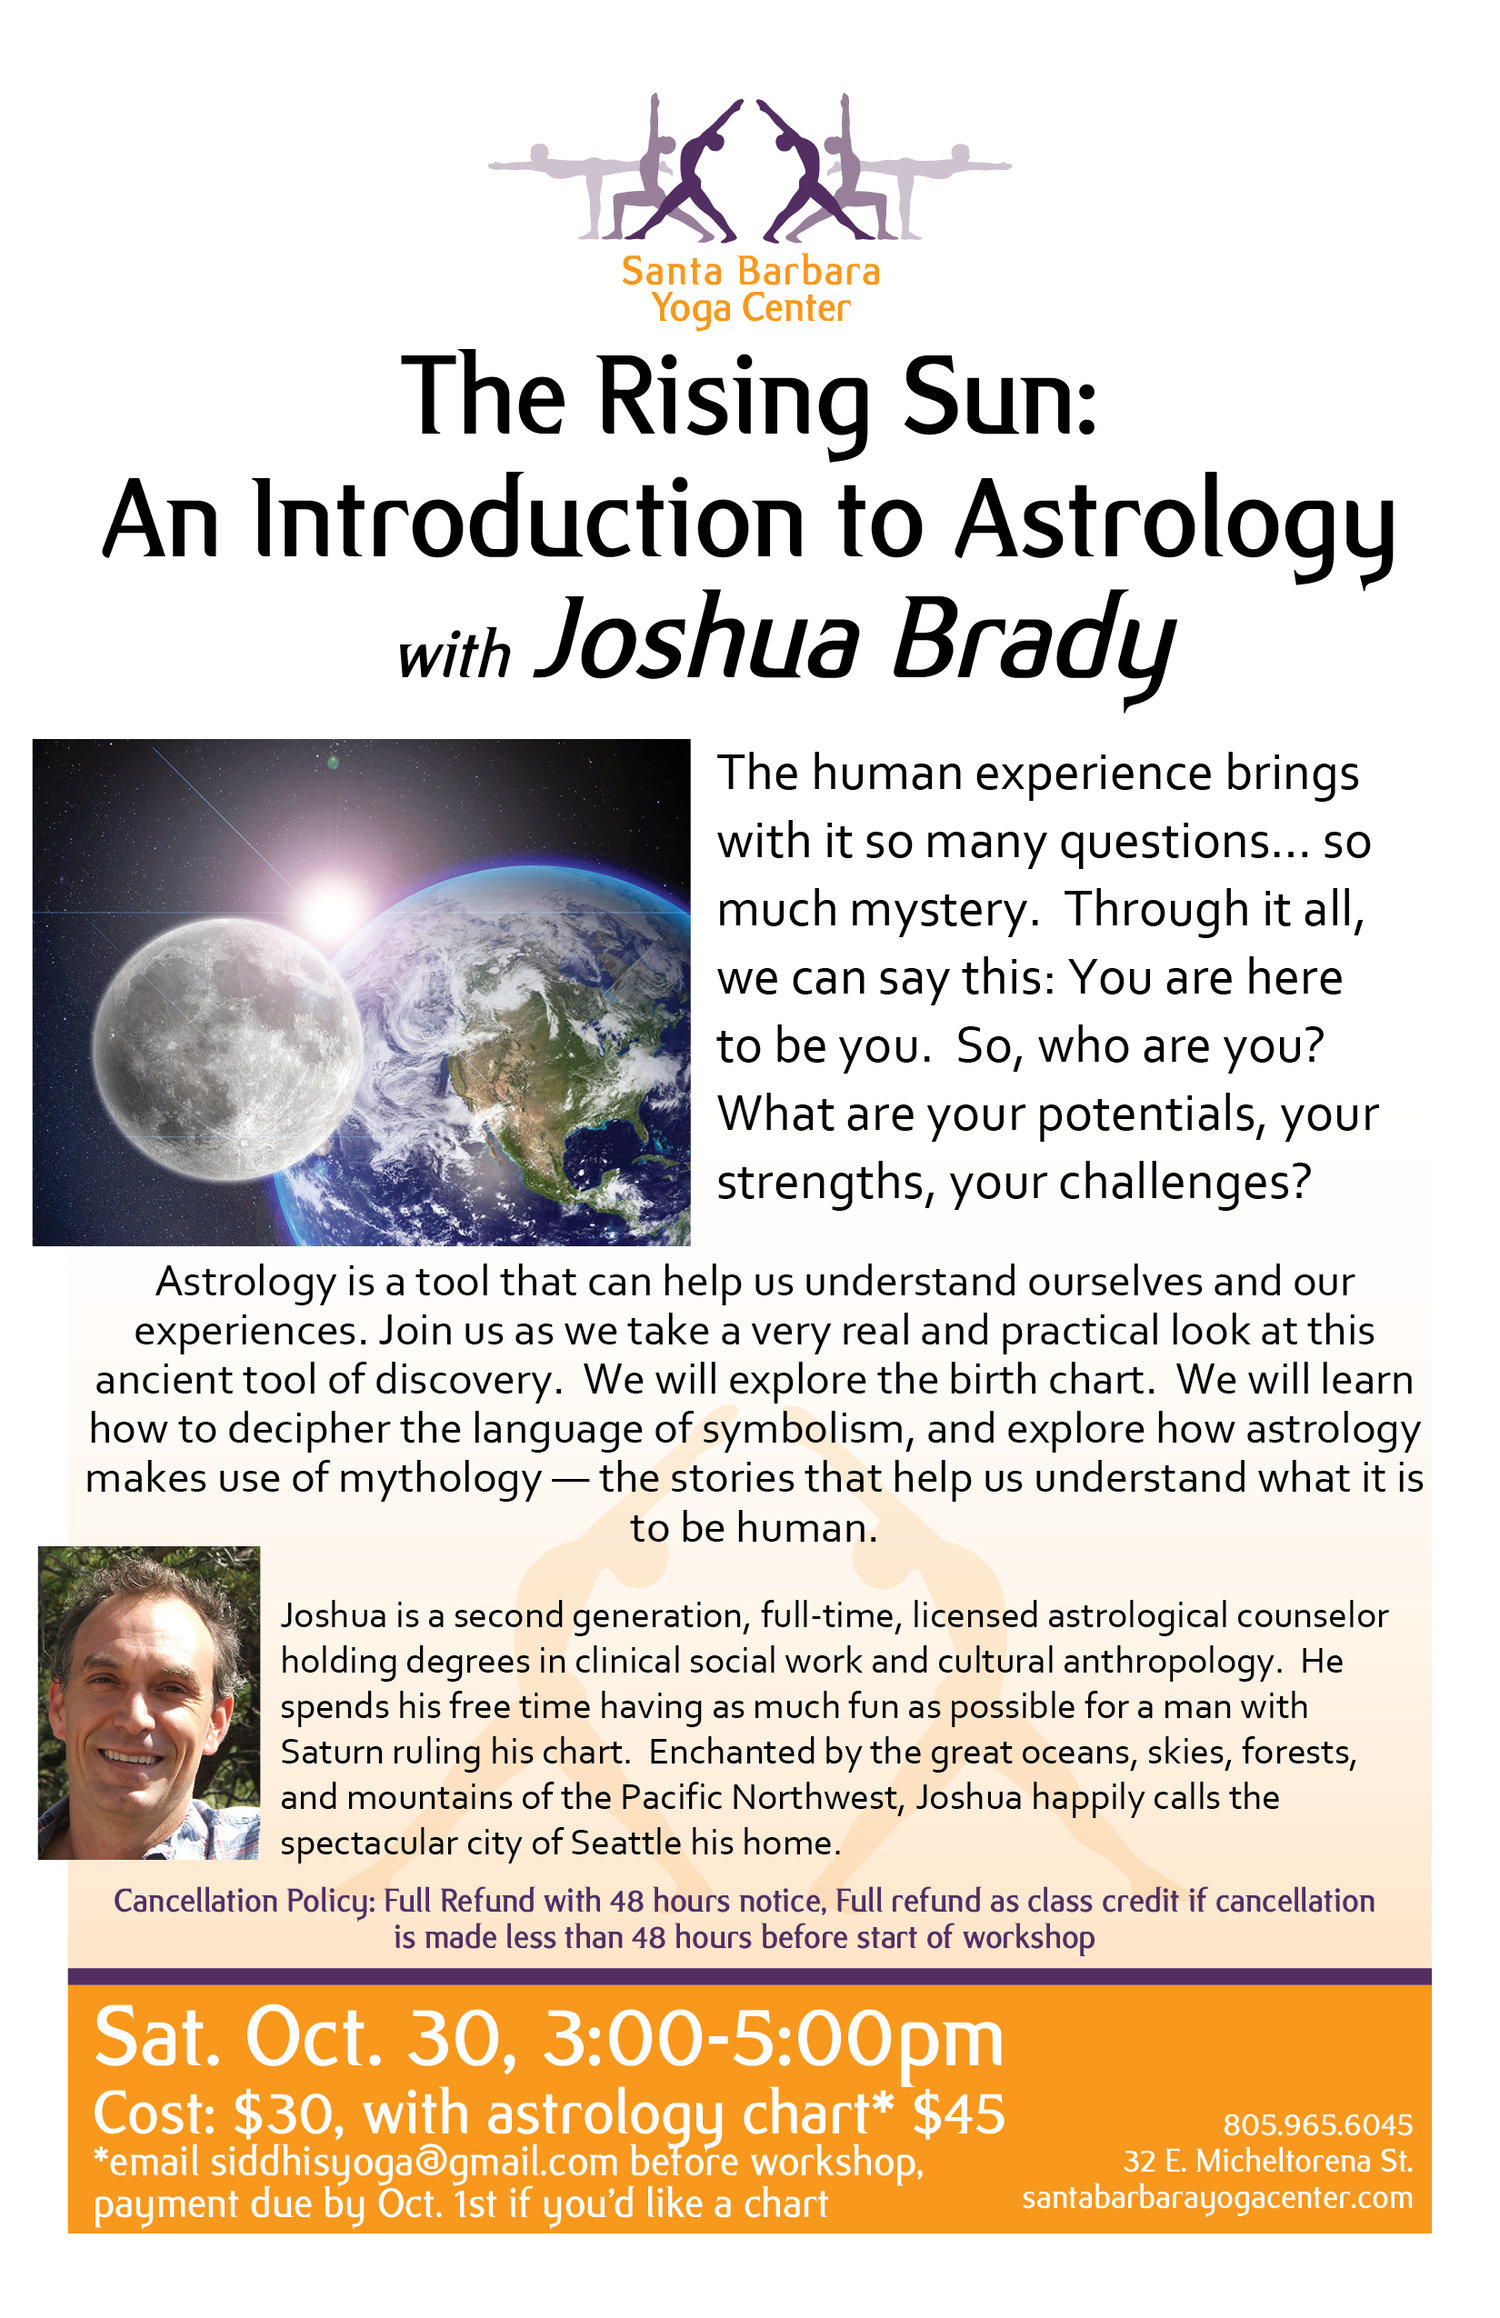 The Rising Sun - An Introduction to Astrology | Siddhi's School of Yoga